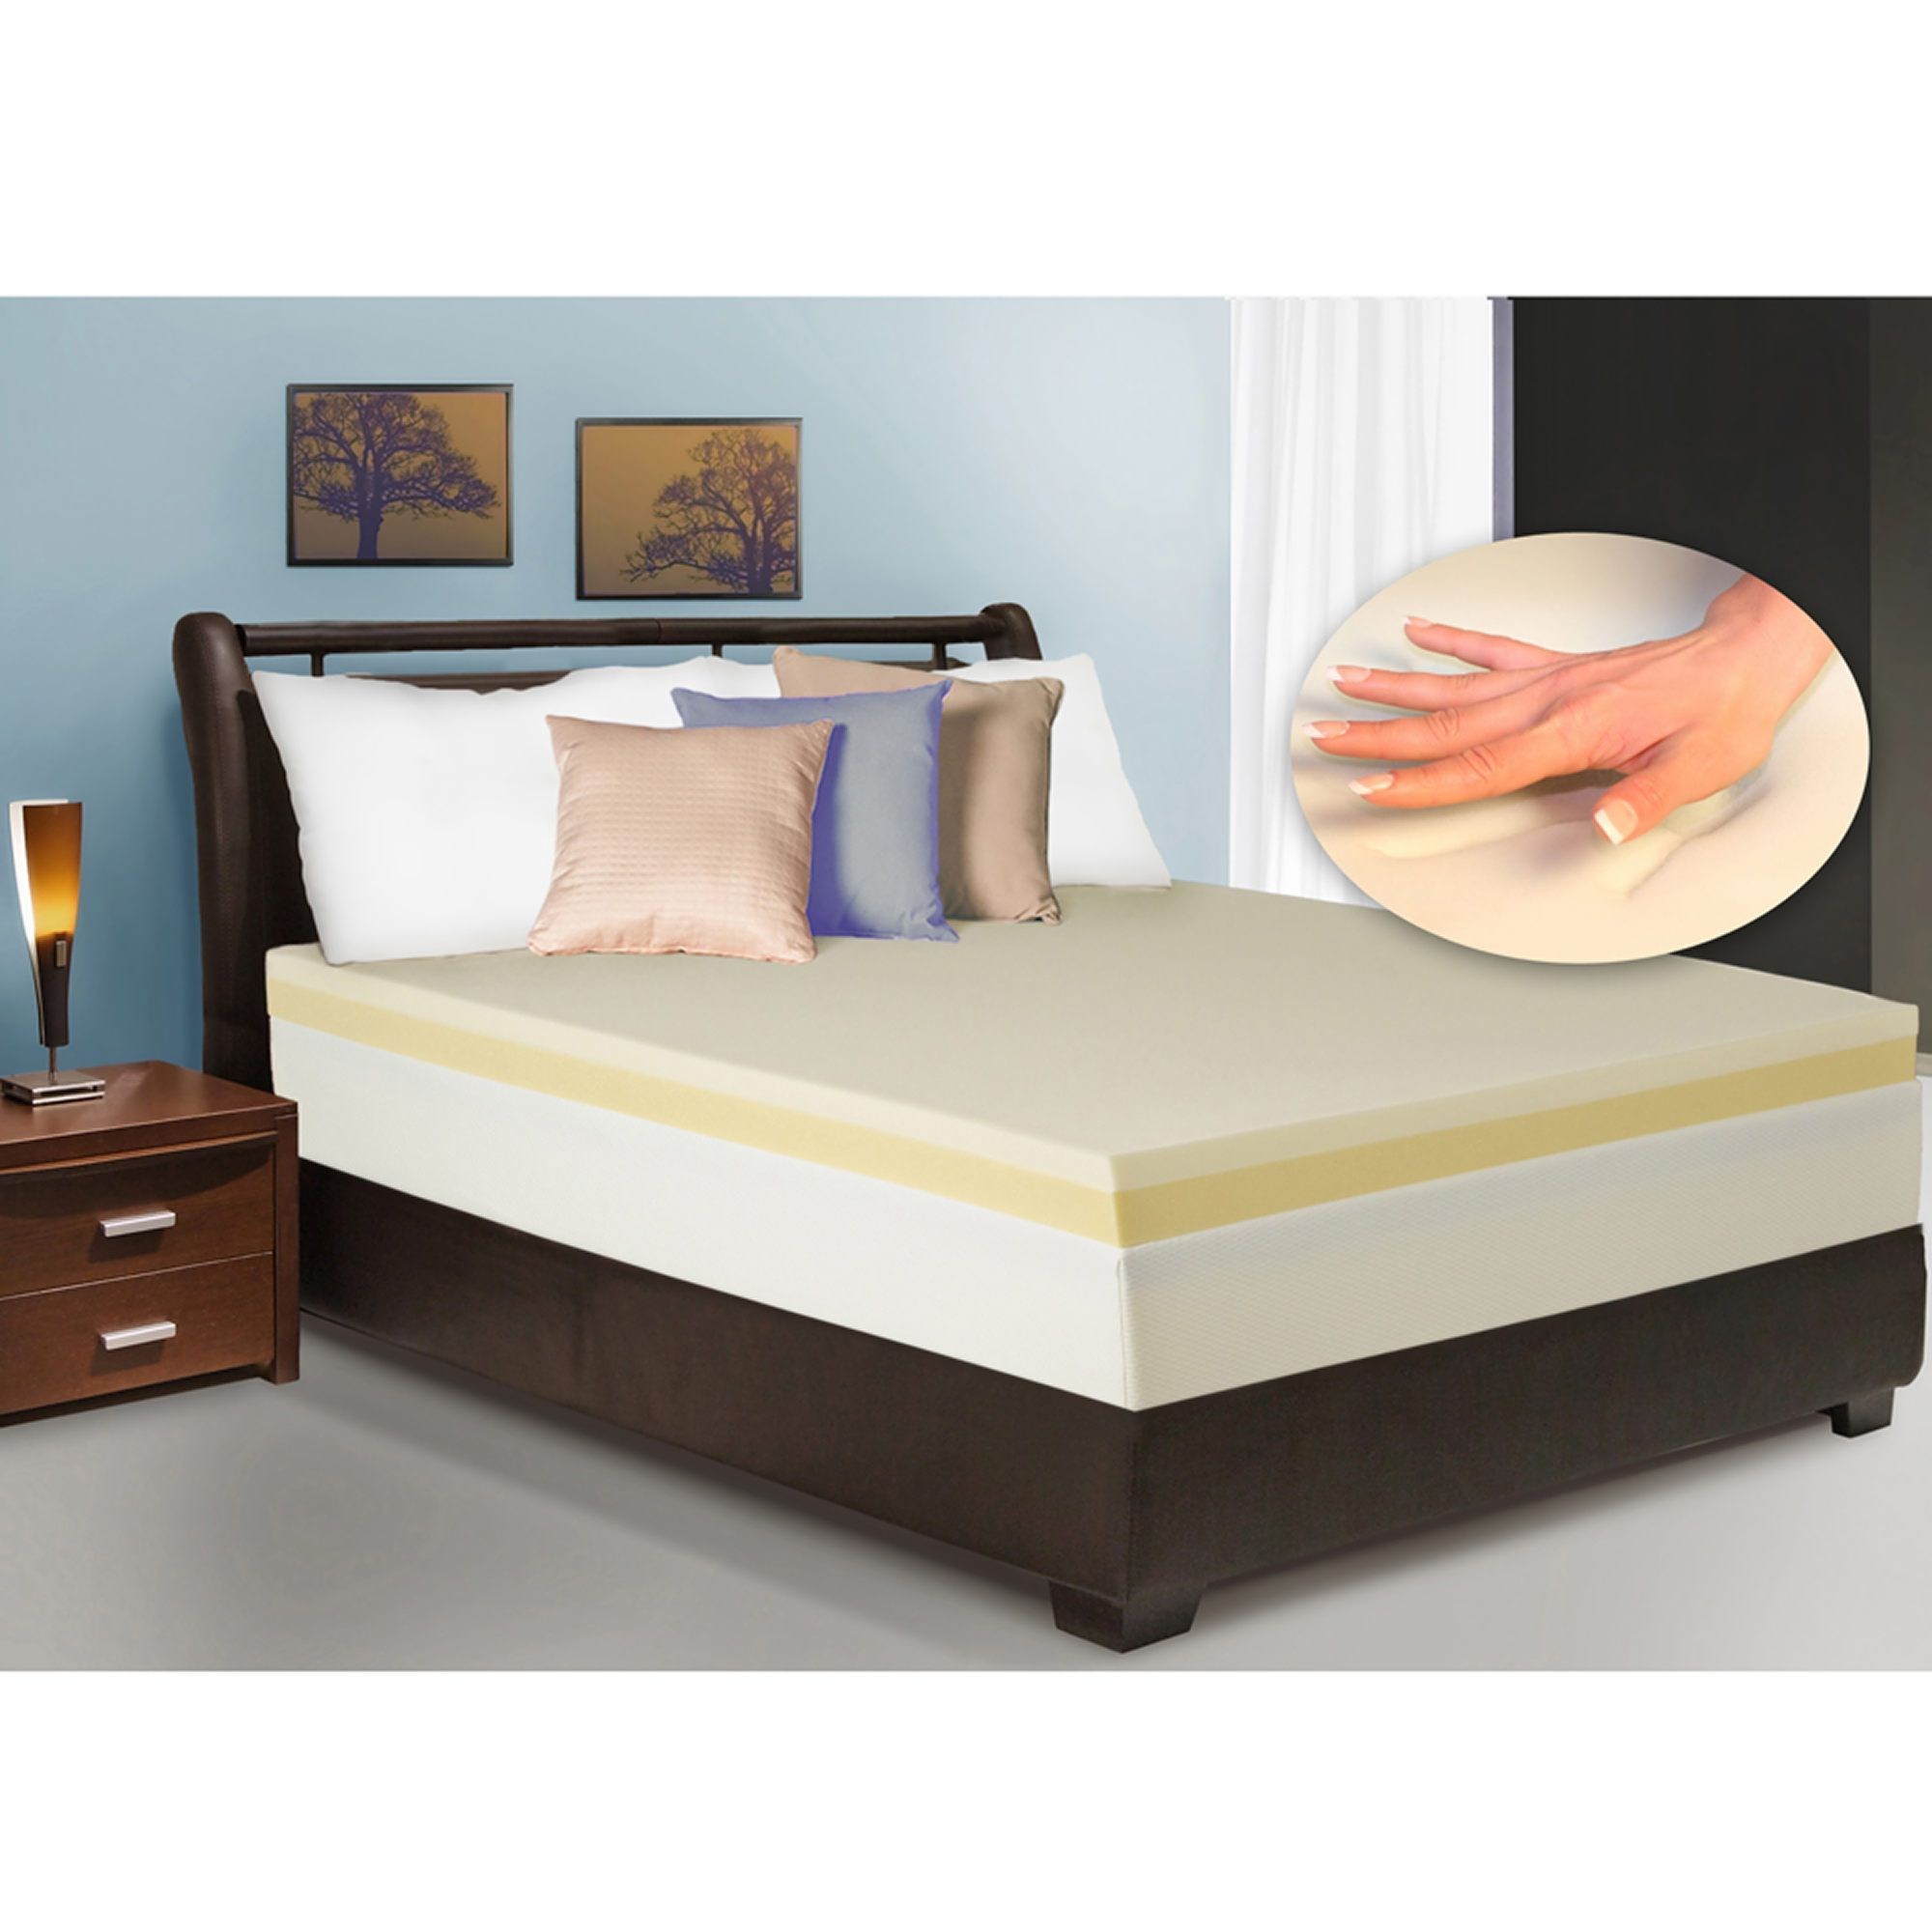 "Cradlesoft 4"" Dual Layer Memory Foam King Size Revitalizer Plus"